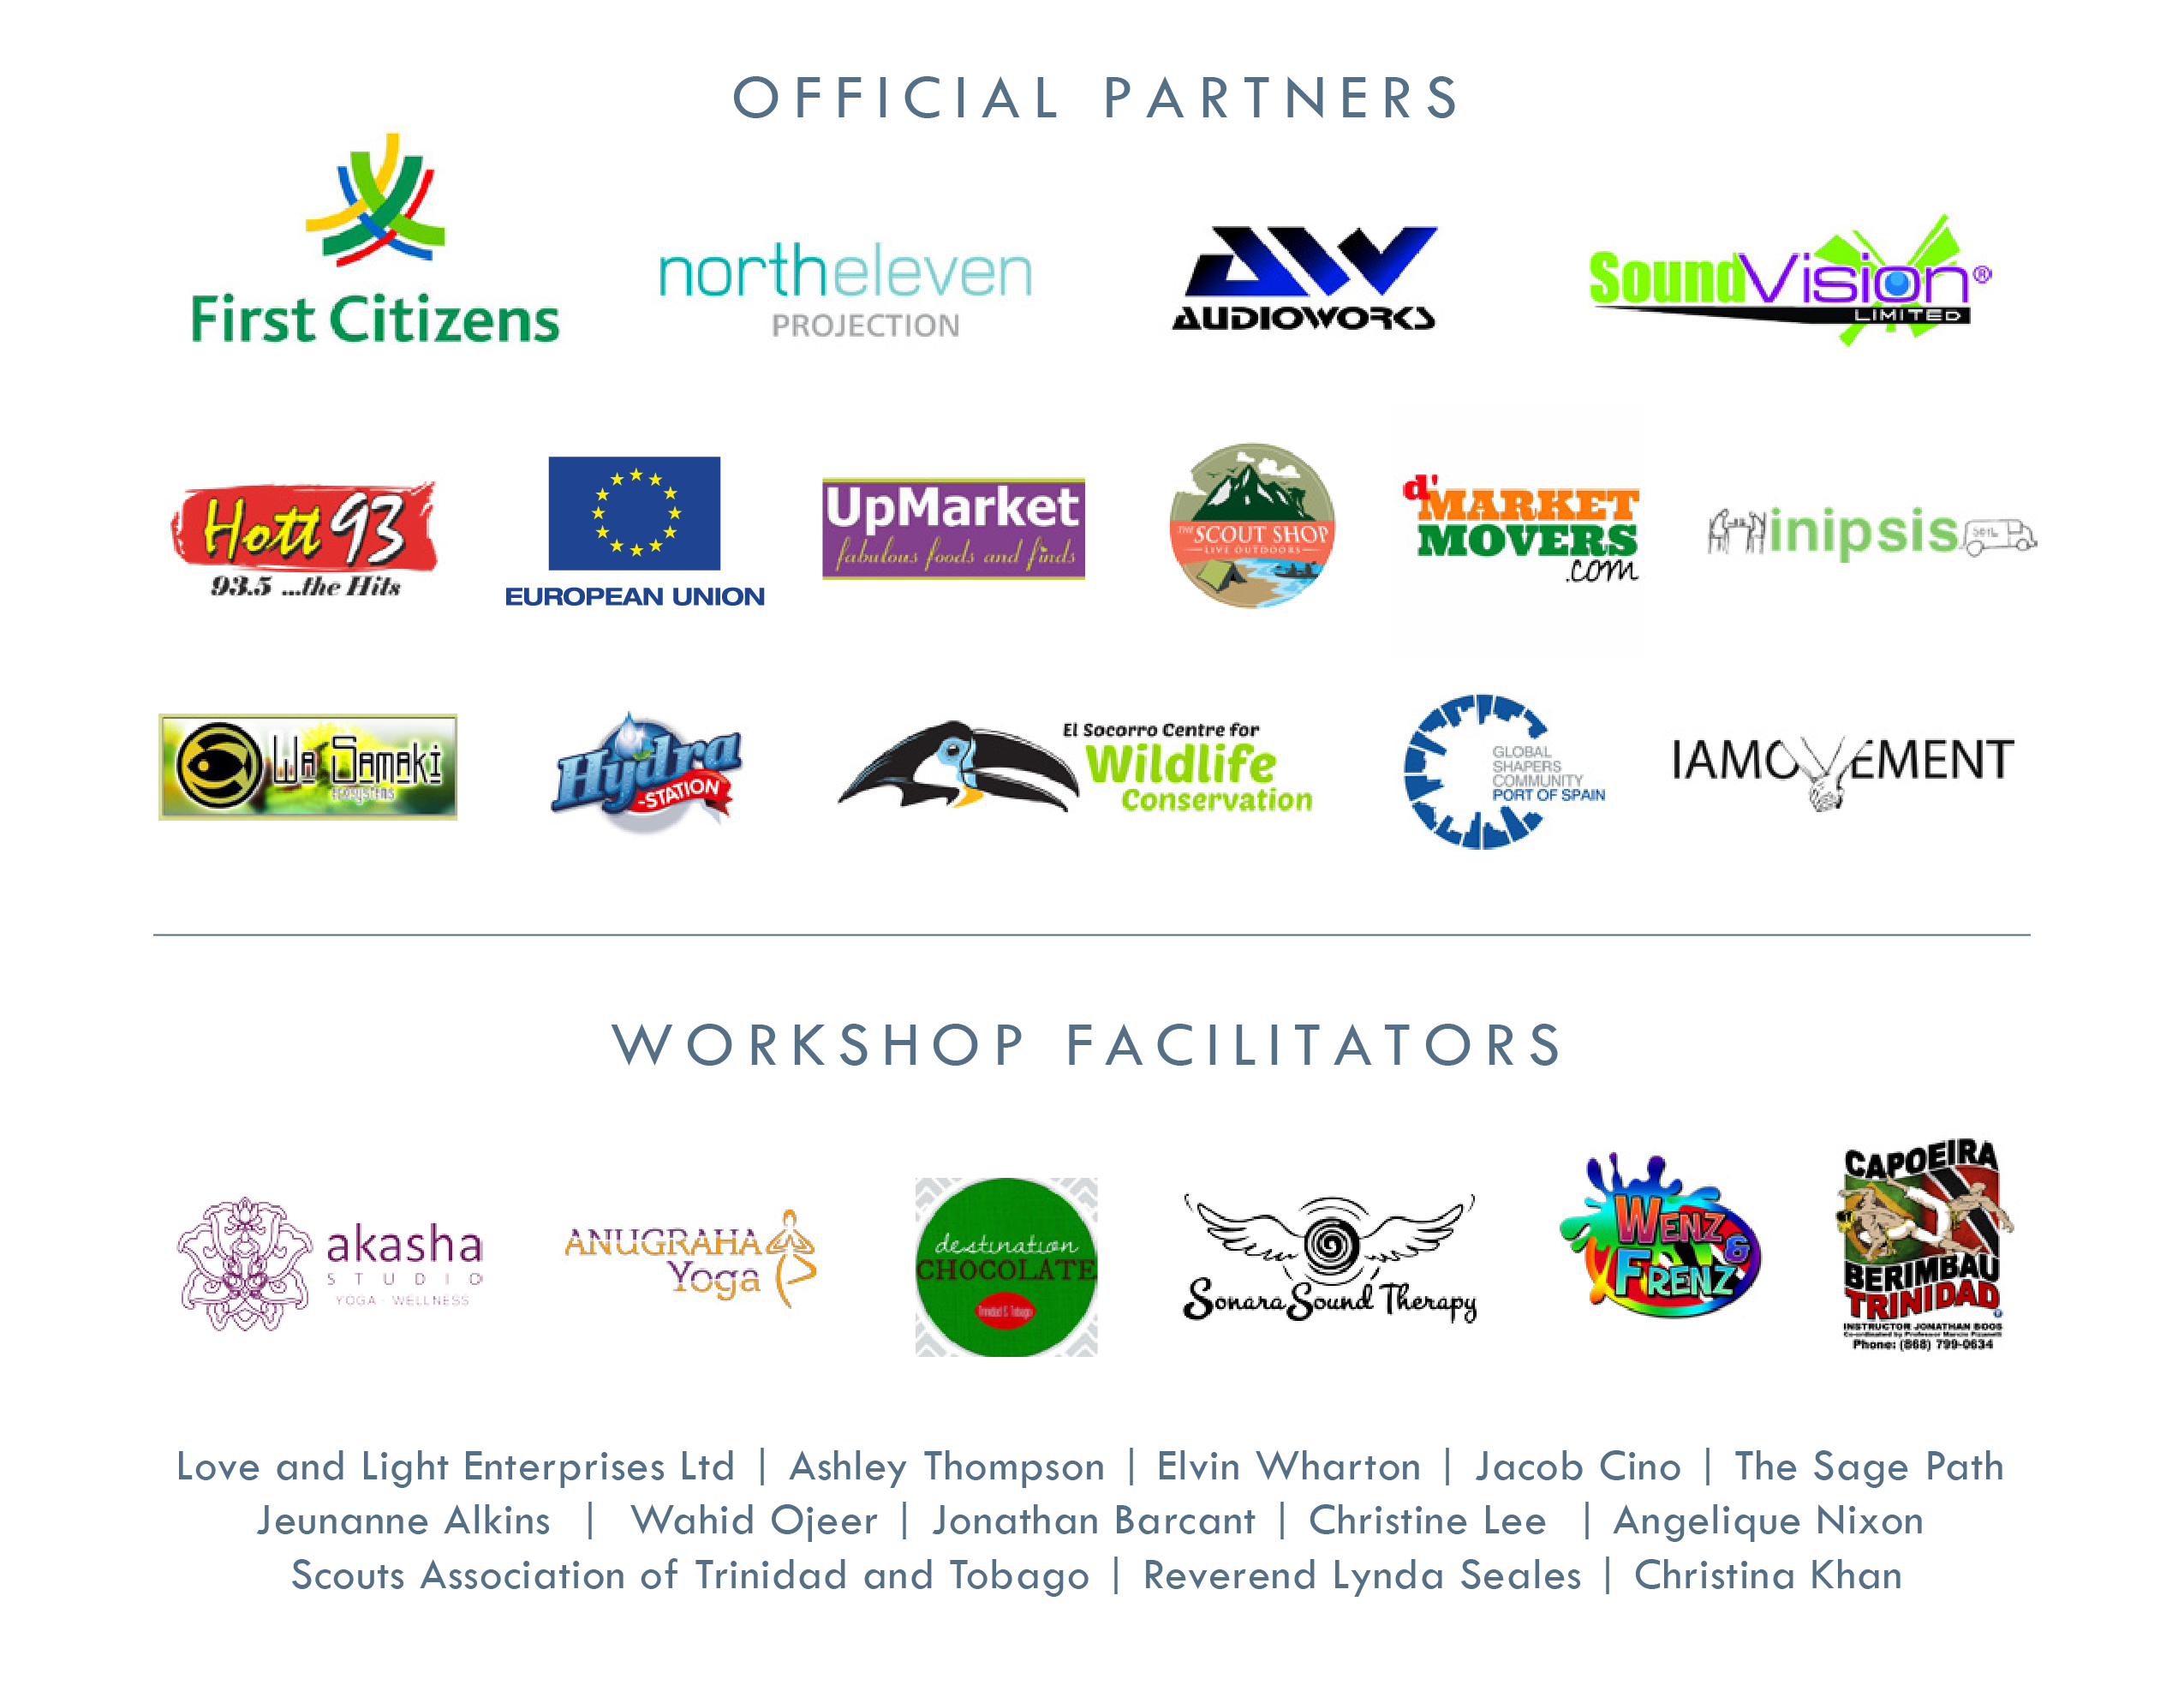 nff2016-partners-facilitators-01-1